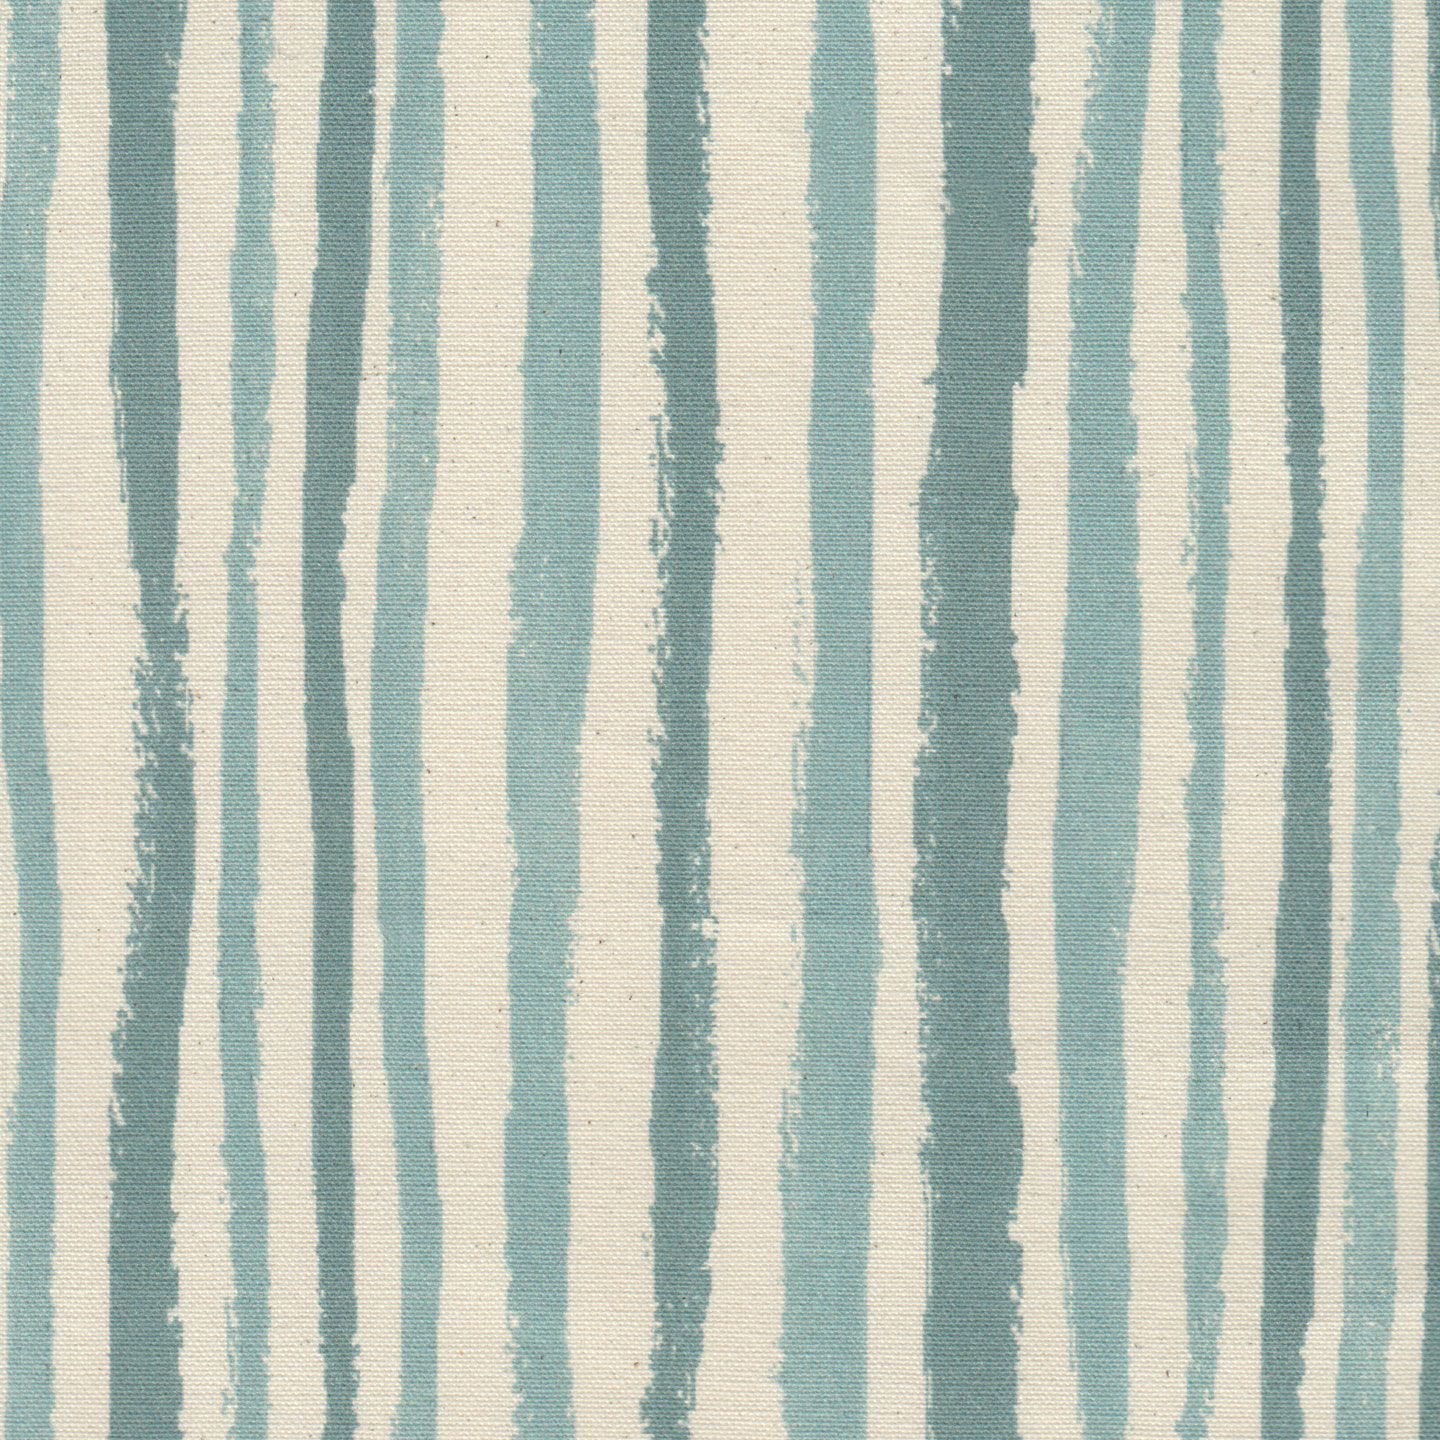 Wandering Stripe in Mineral | Clay McLaurin #textiles #fabric #cotton #stripe #blue